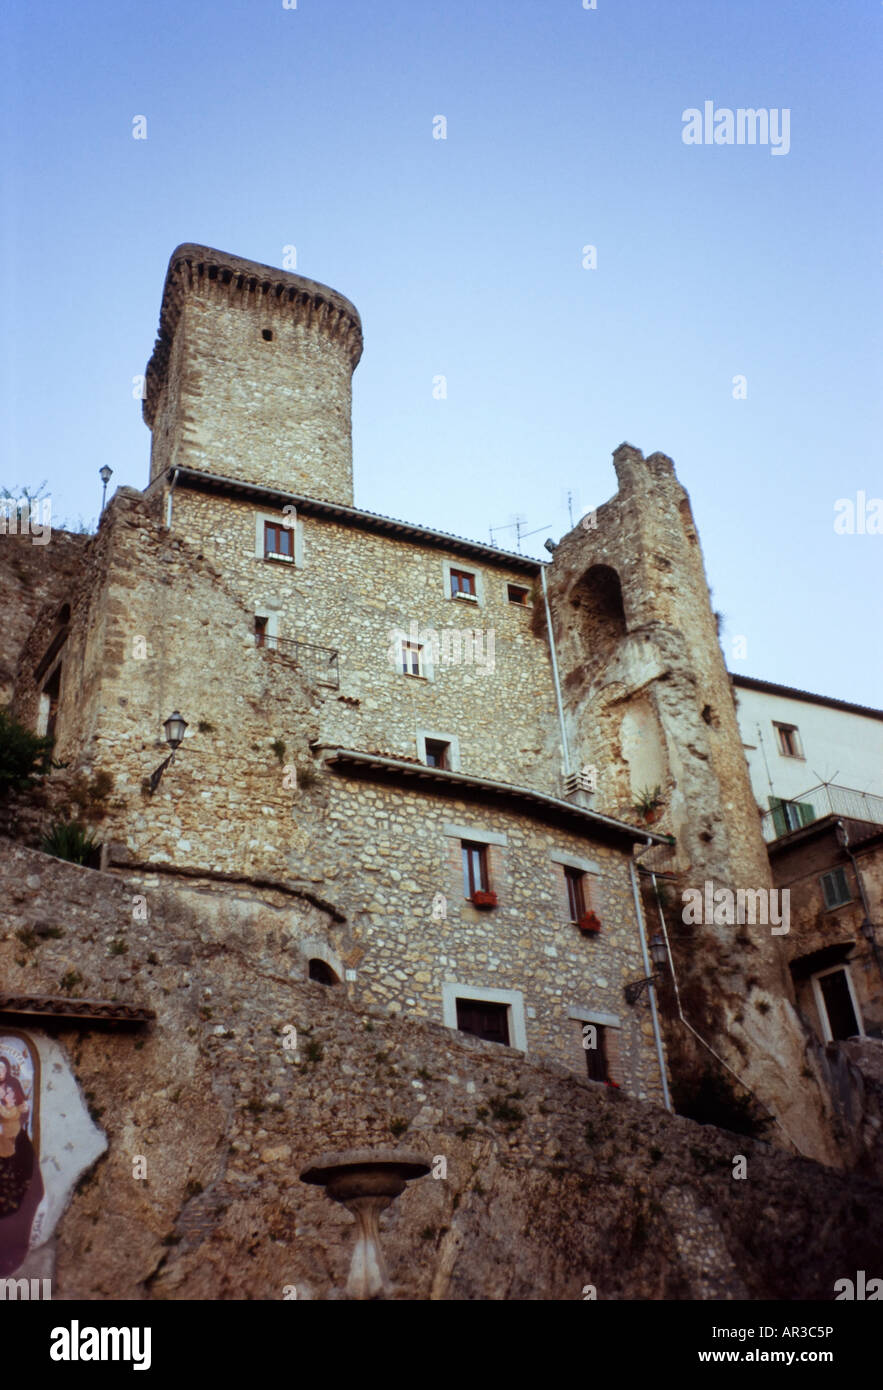 Medieval stronghold in Italian hilltown [...] - Stock Image